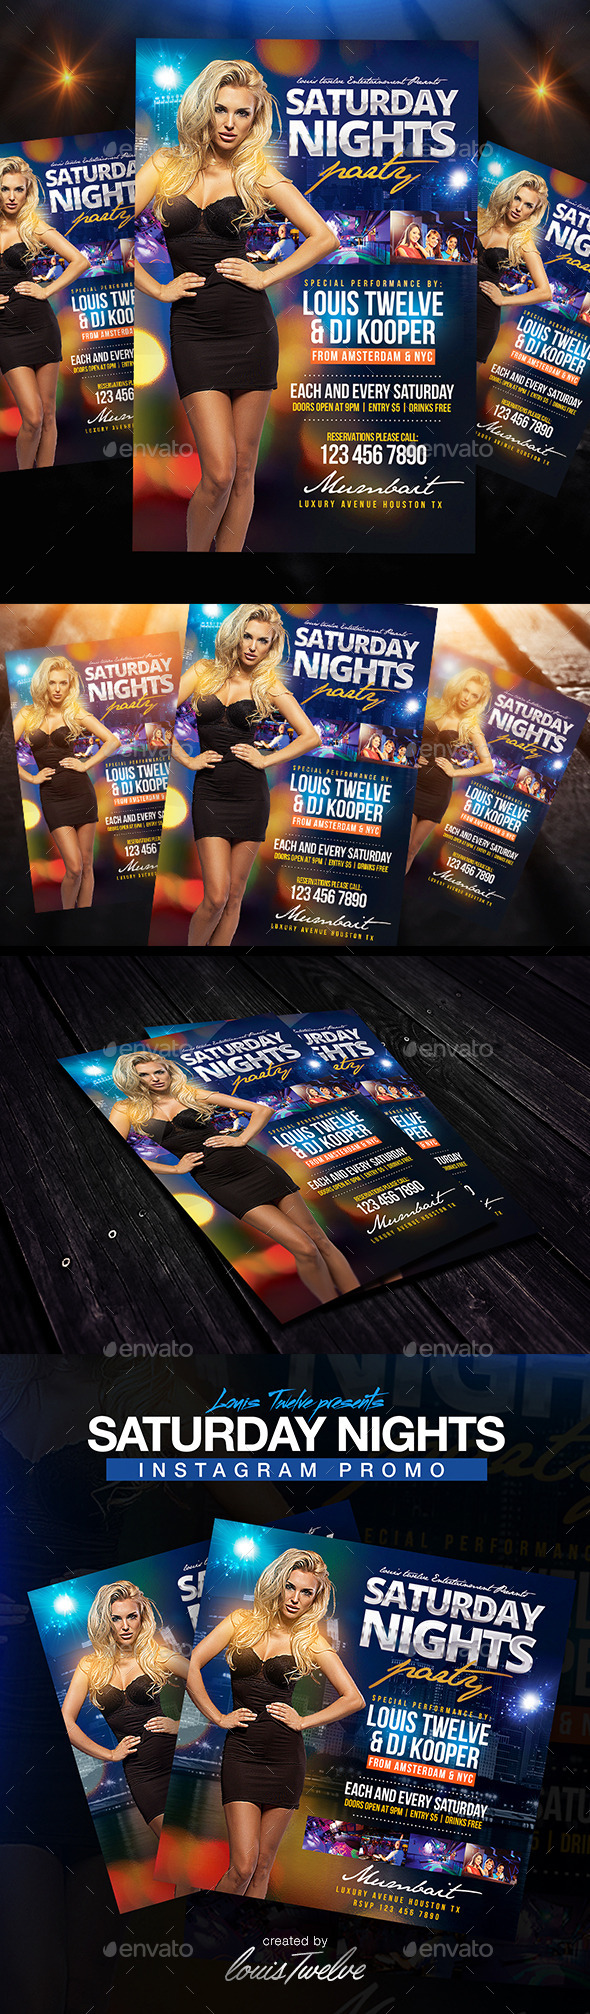 Saturday Nights Flyer + Instagram Promo - Clubs & Parties Events